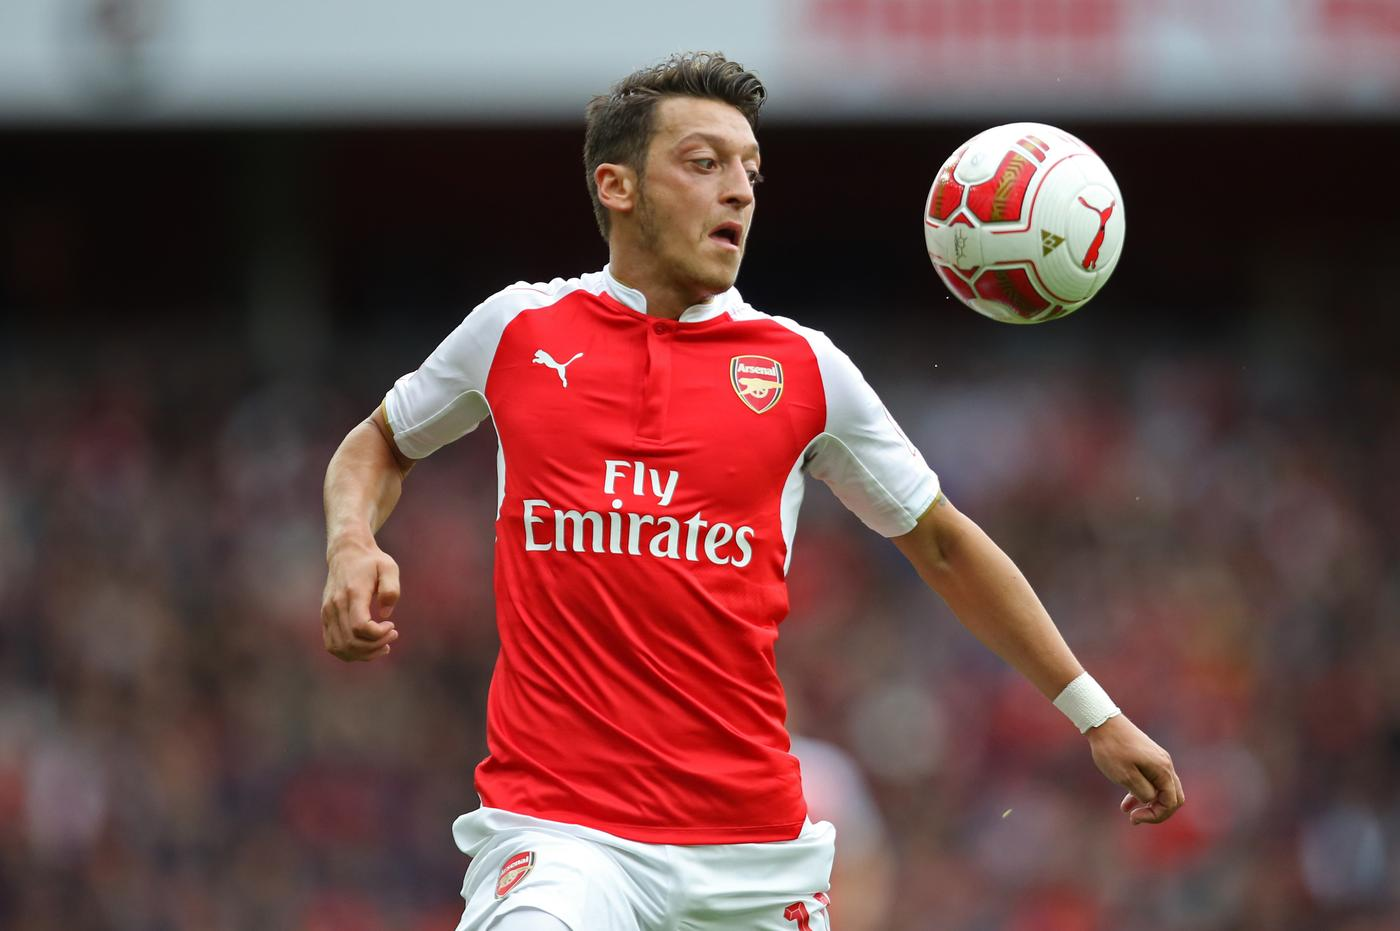 Arsenal's Mesut Ozil in action Paul Hackett/Reuters